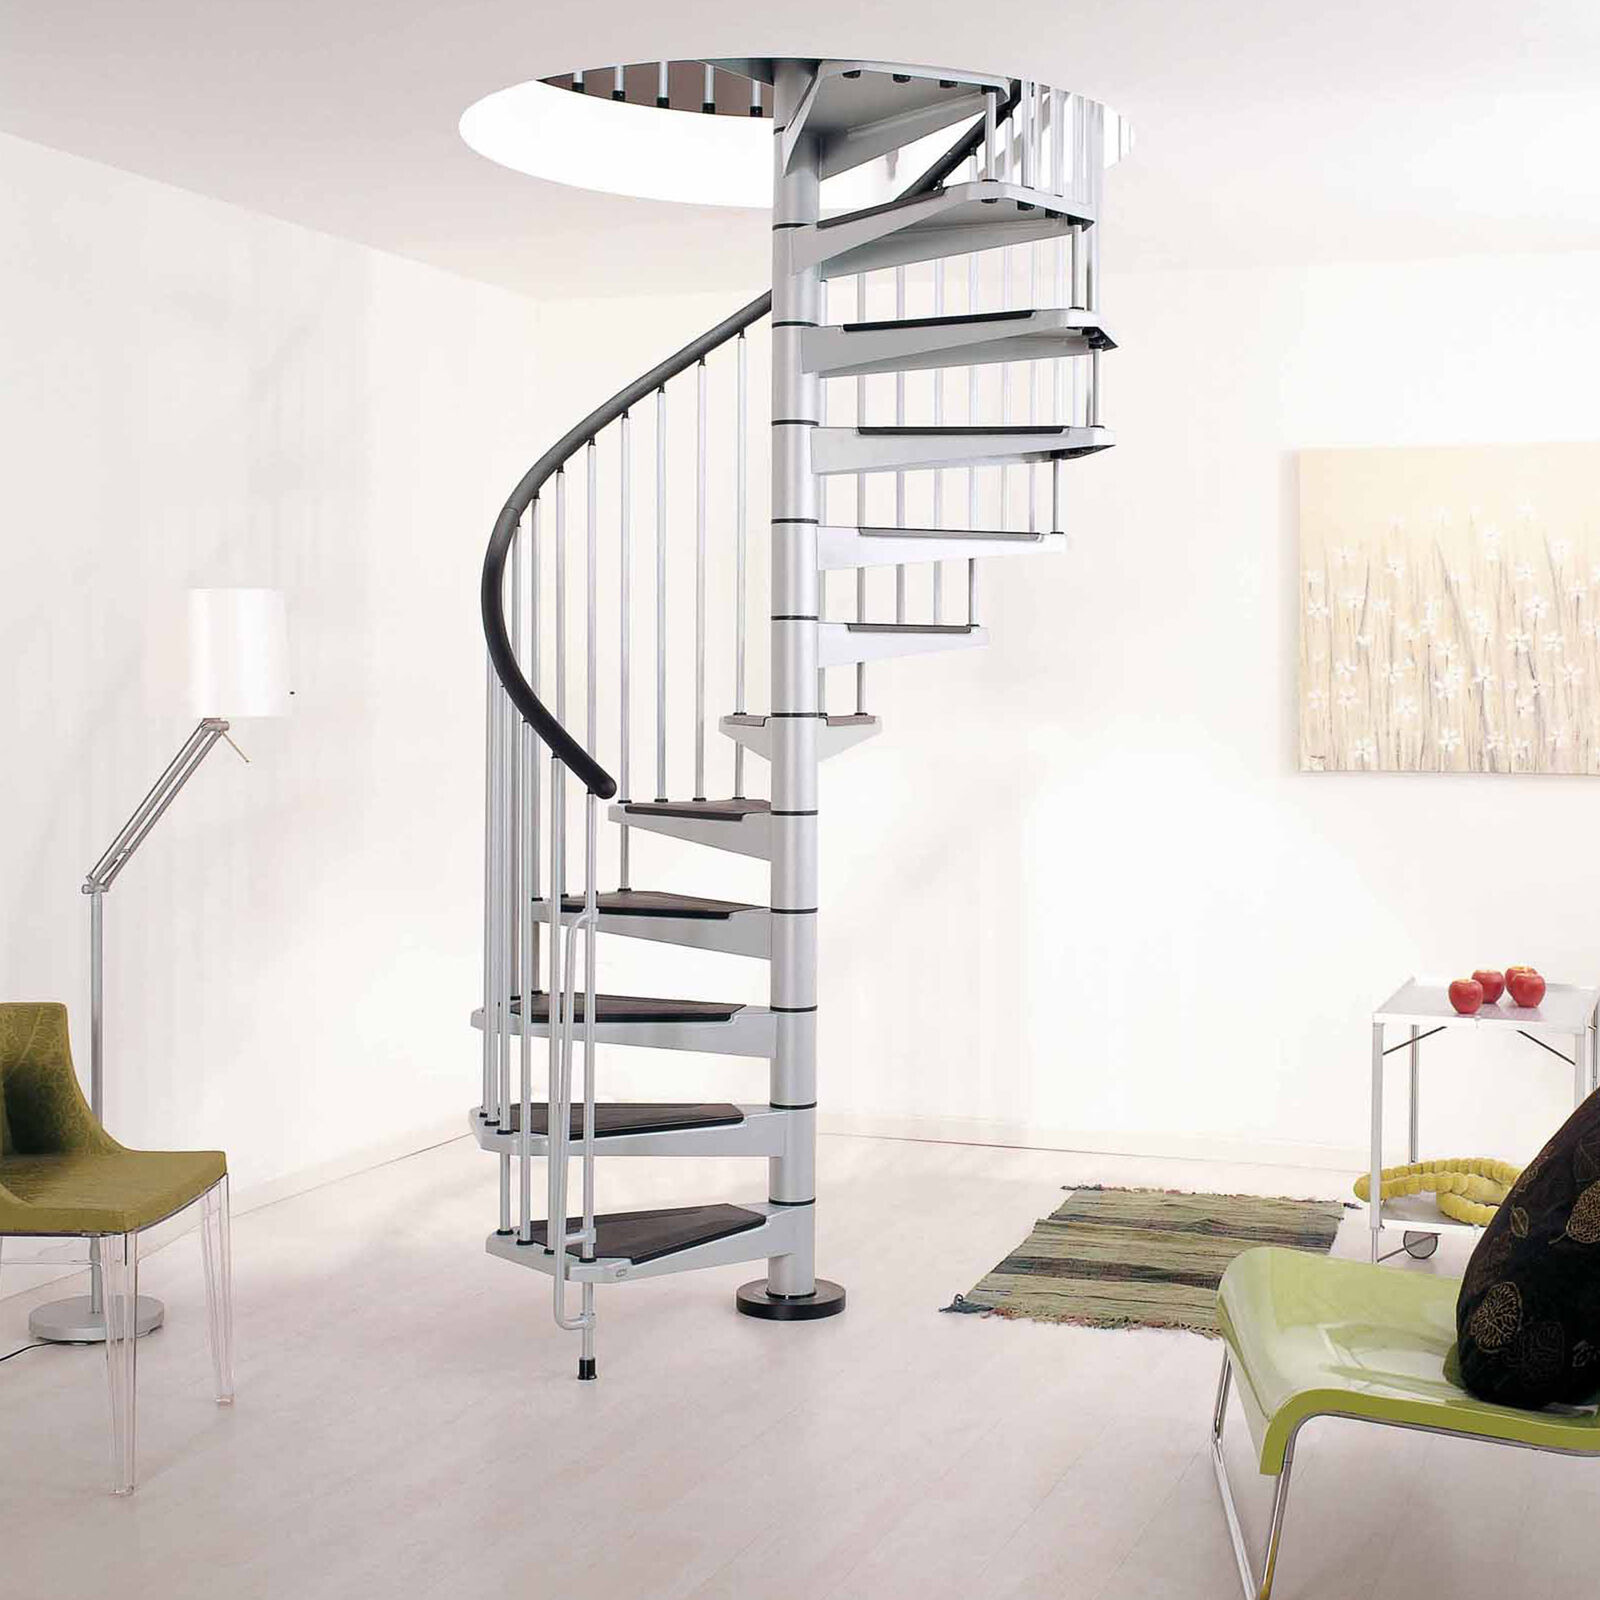 Details About Arke Fontanot Civik Spiral Staircase Diy Stair Kit 120 140 160cm 3 X Colours